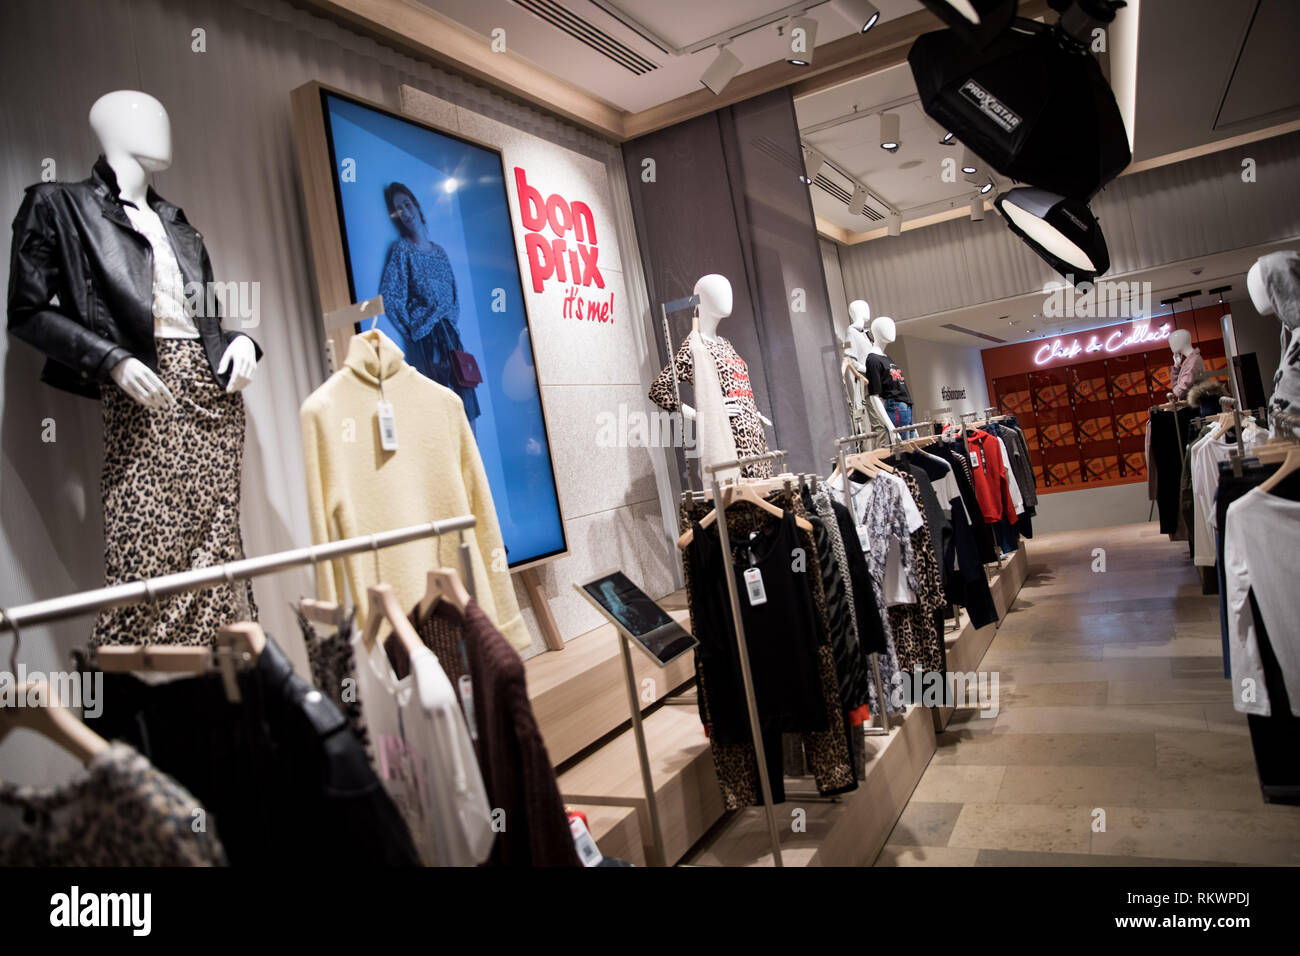 0tto Online Shop Hamburg Germany 04th Feb 2019 Garments Hang On Hangers In The